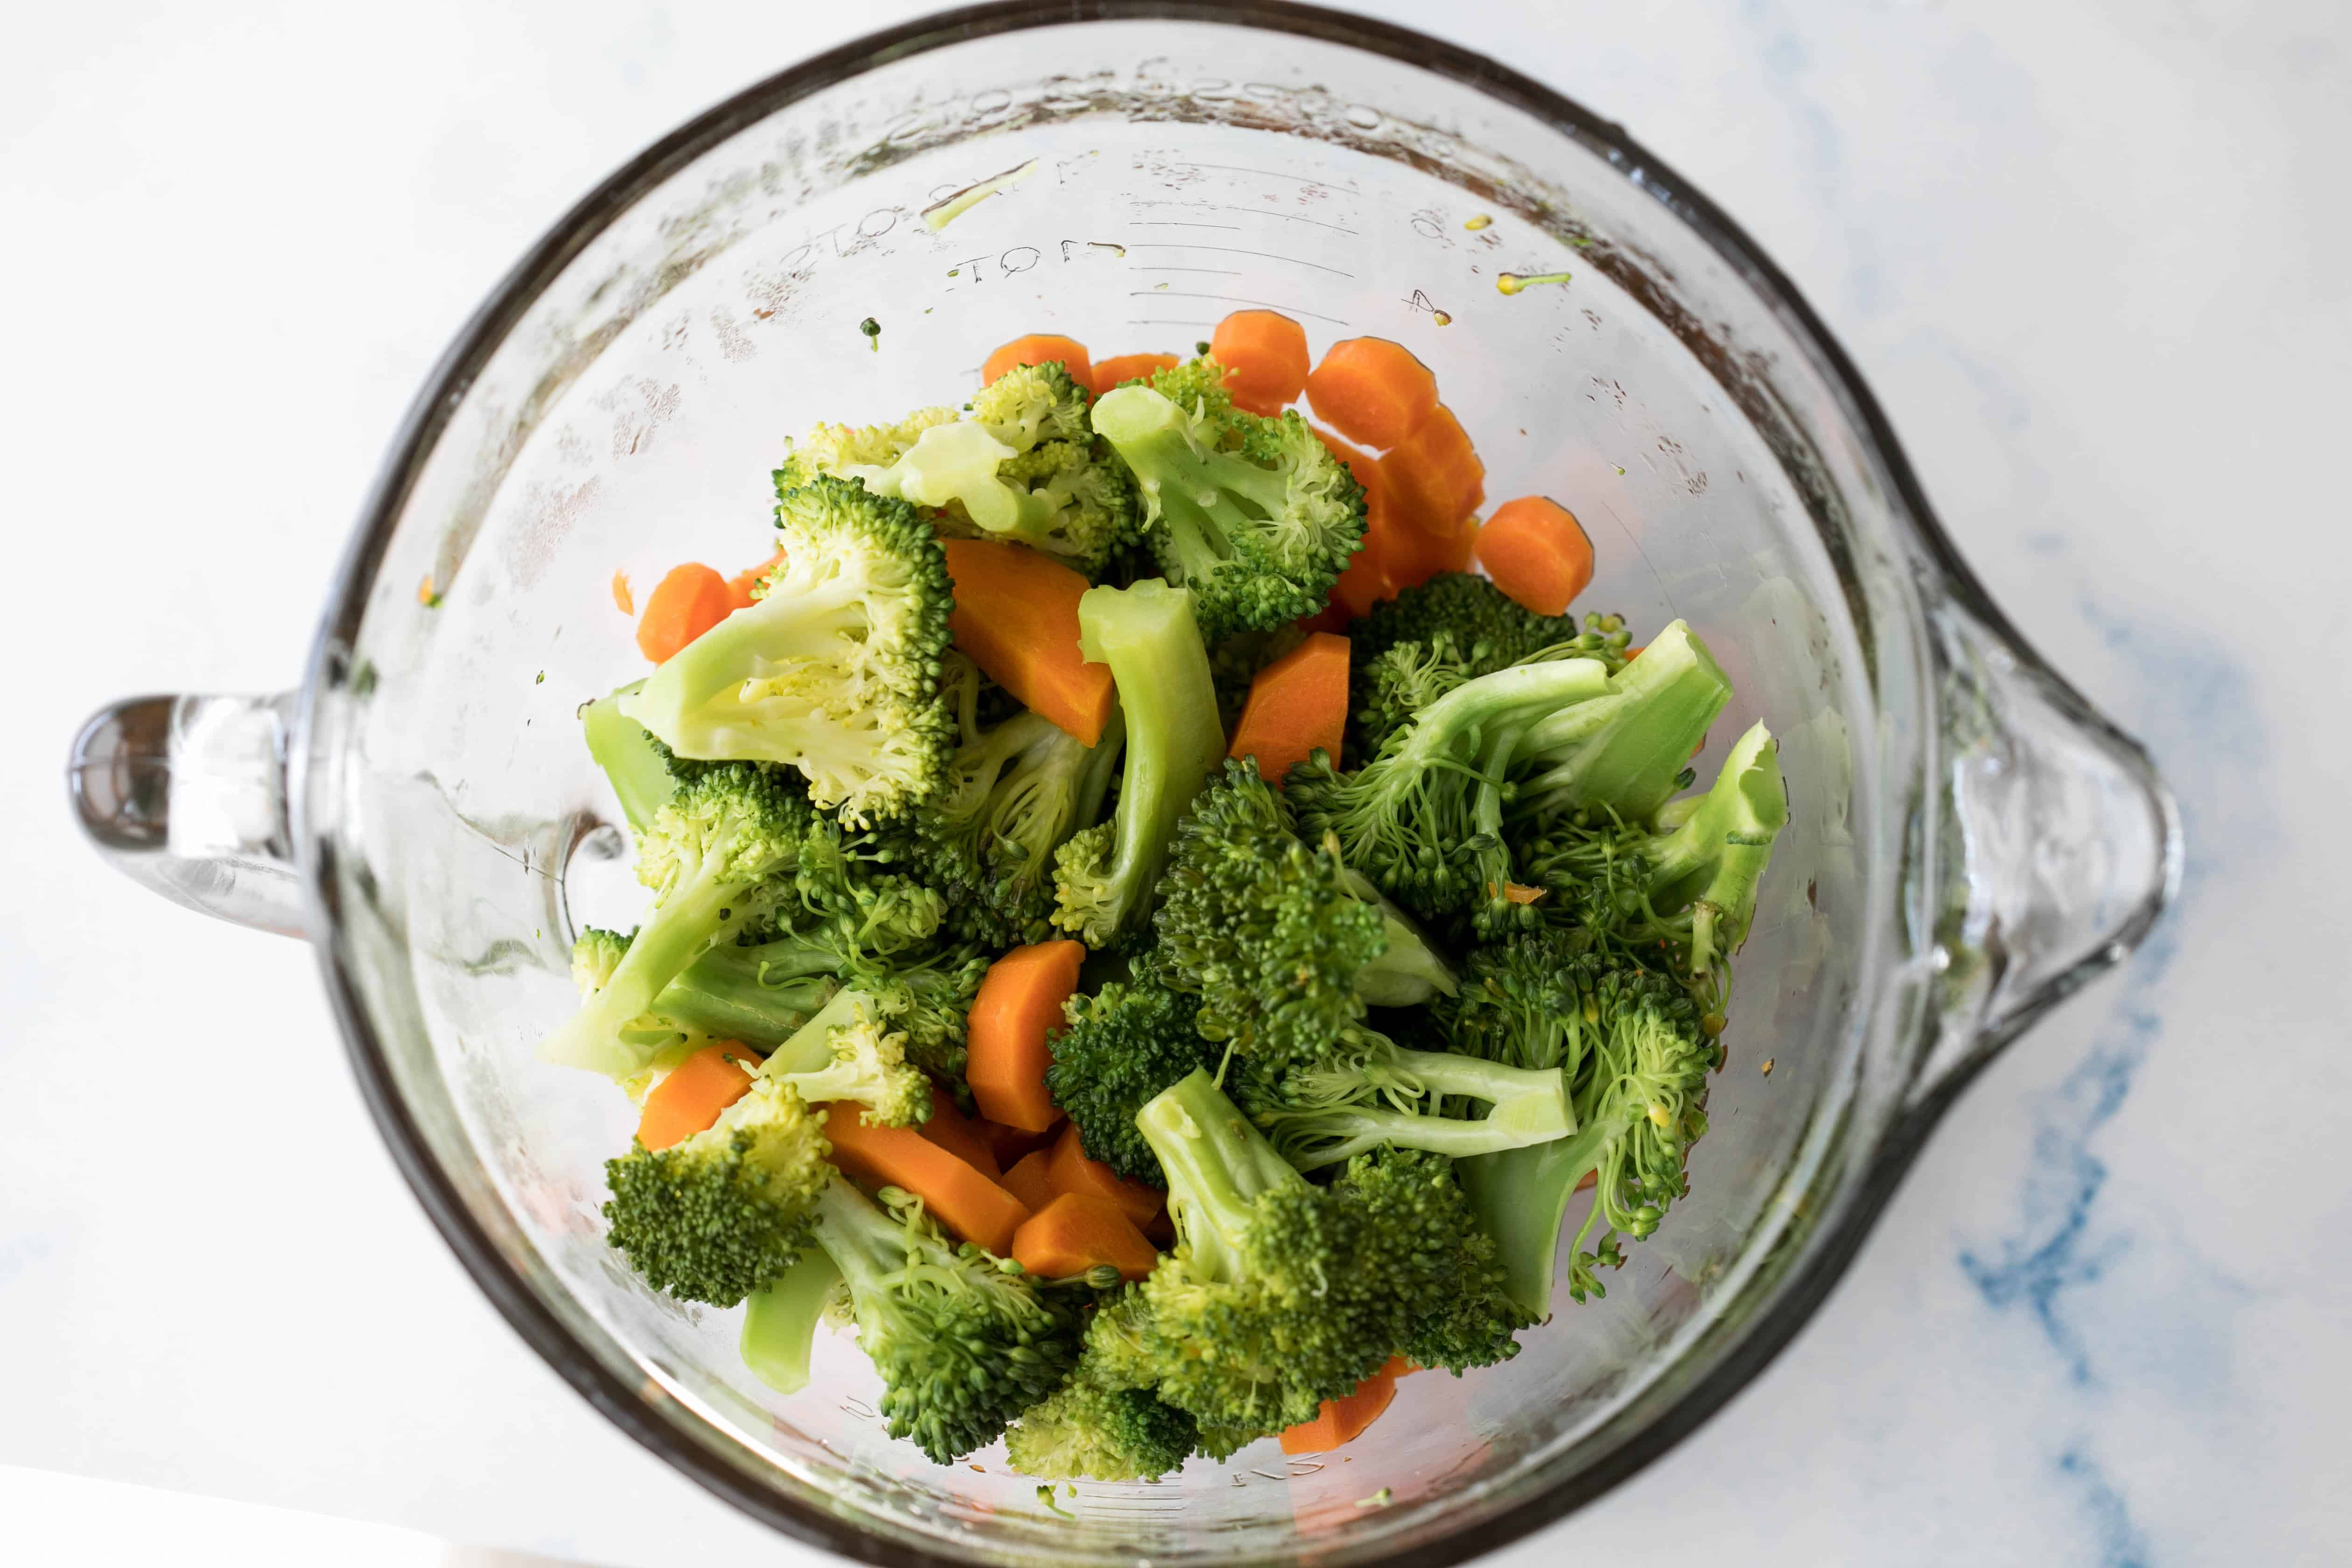 steamed broccoli and carrots in glass batter bowl